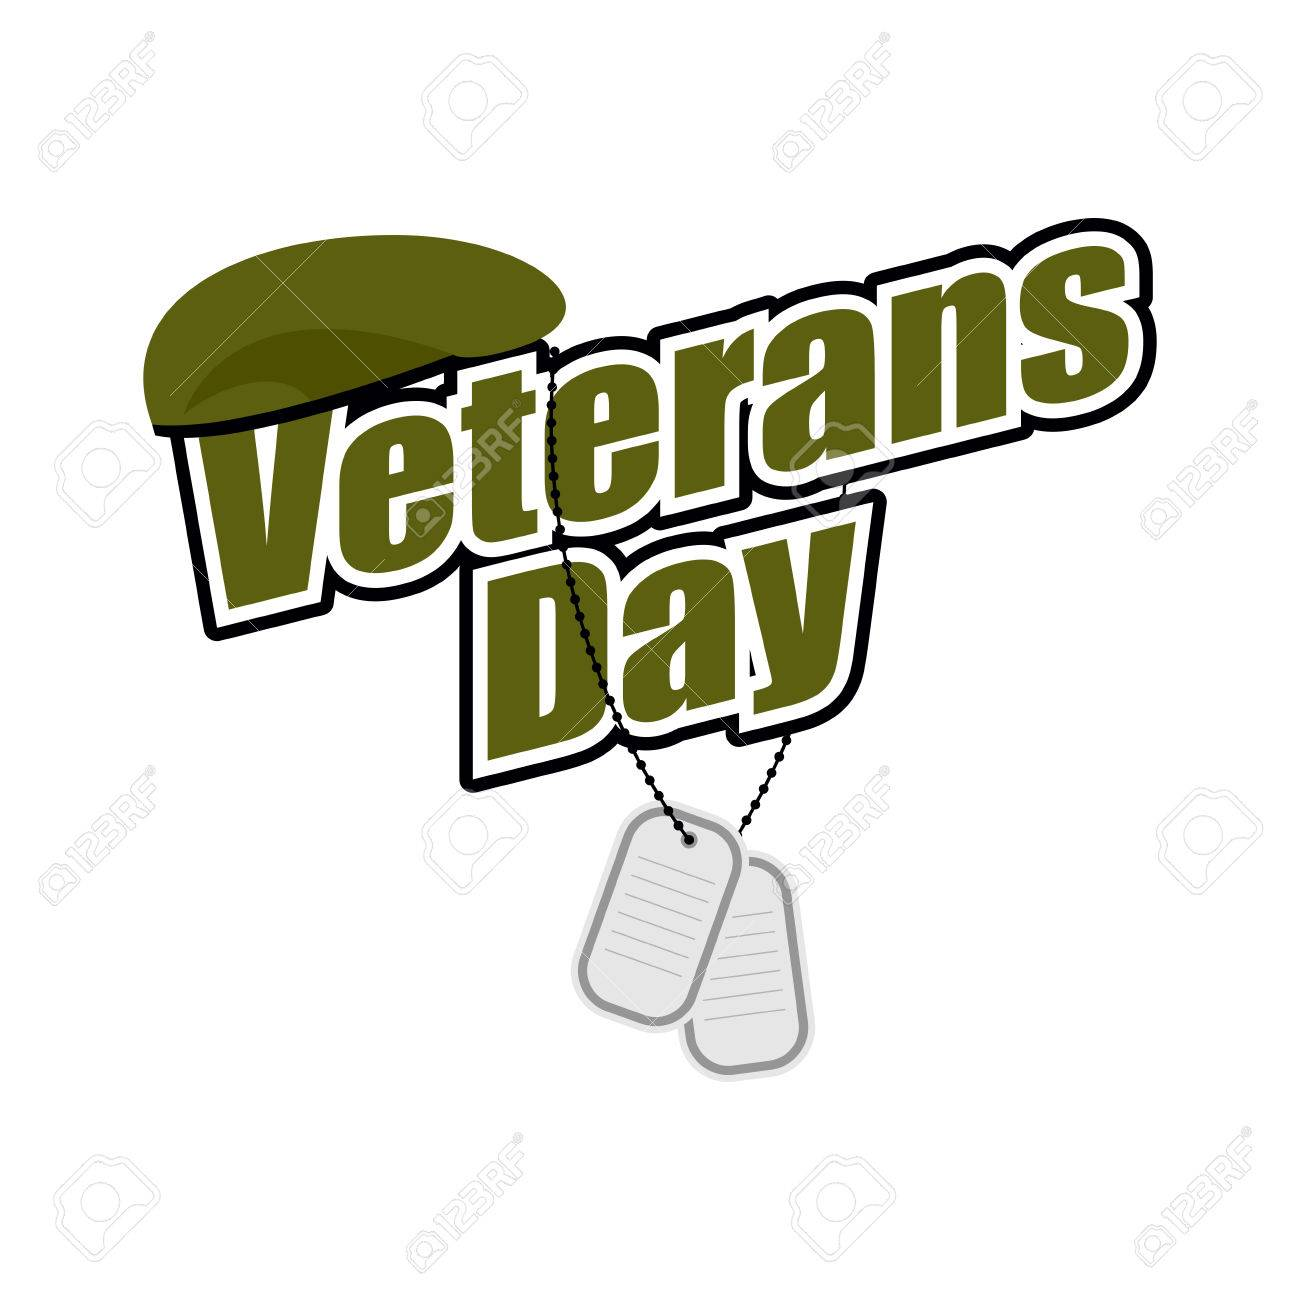 Veterans Day Text With Army Token And Green Beret Soldier National